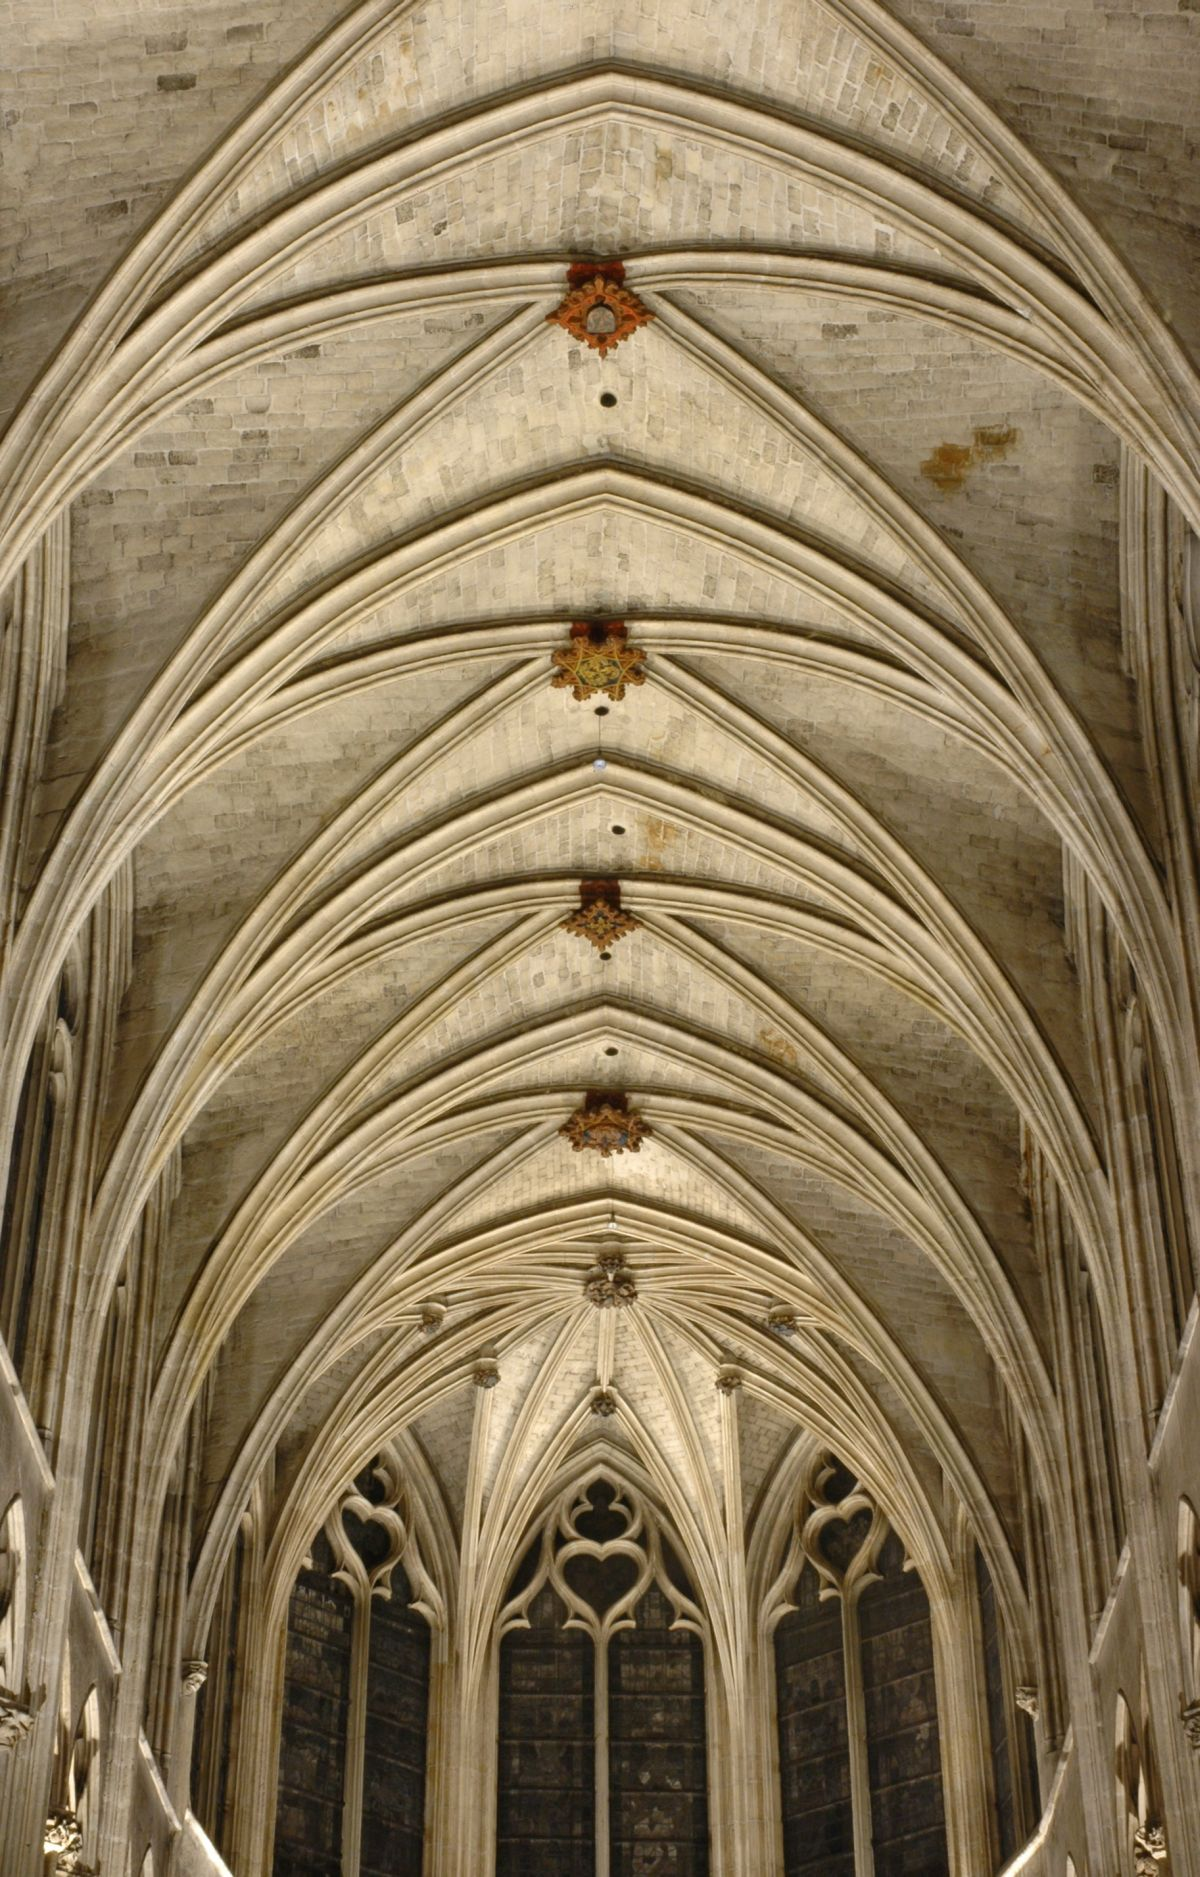 Vaulted Ceilings Comes From Medieval Times